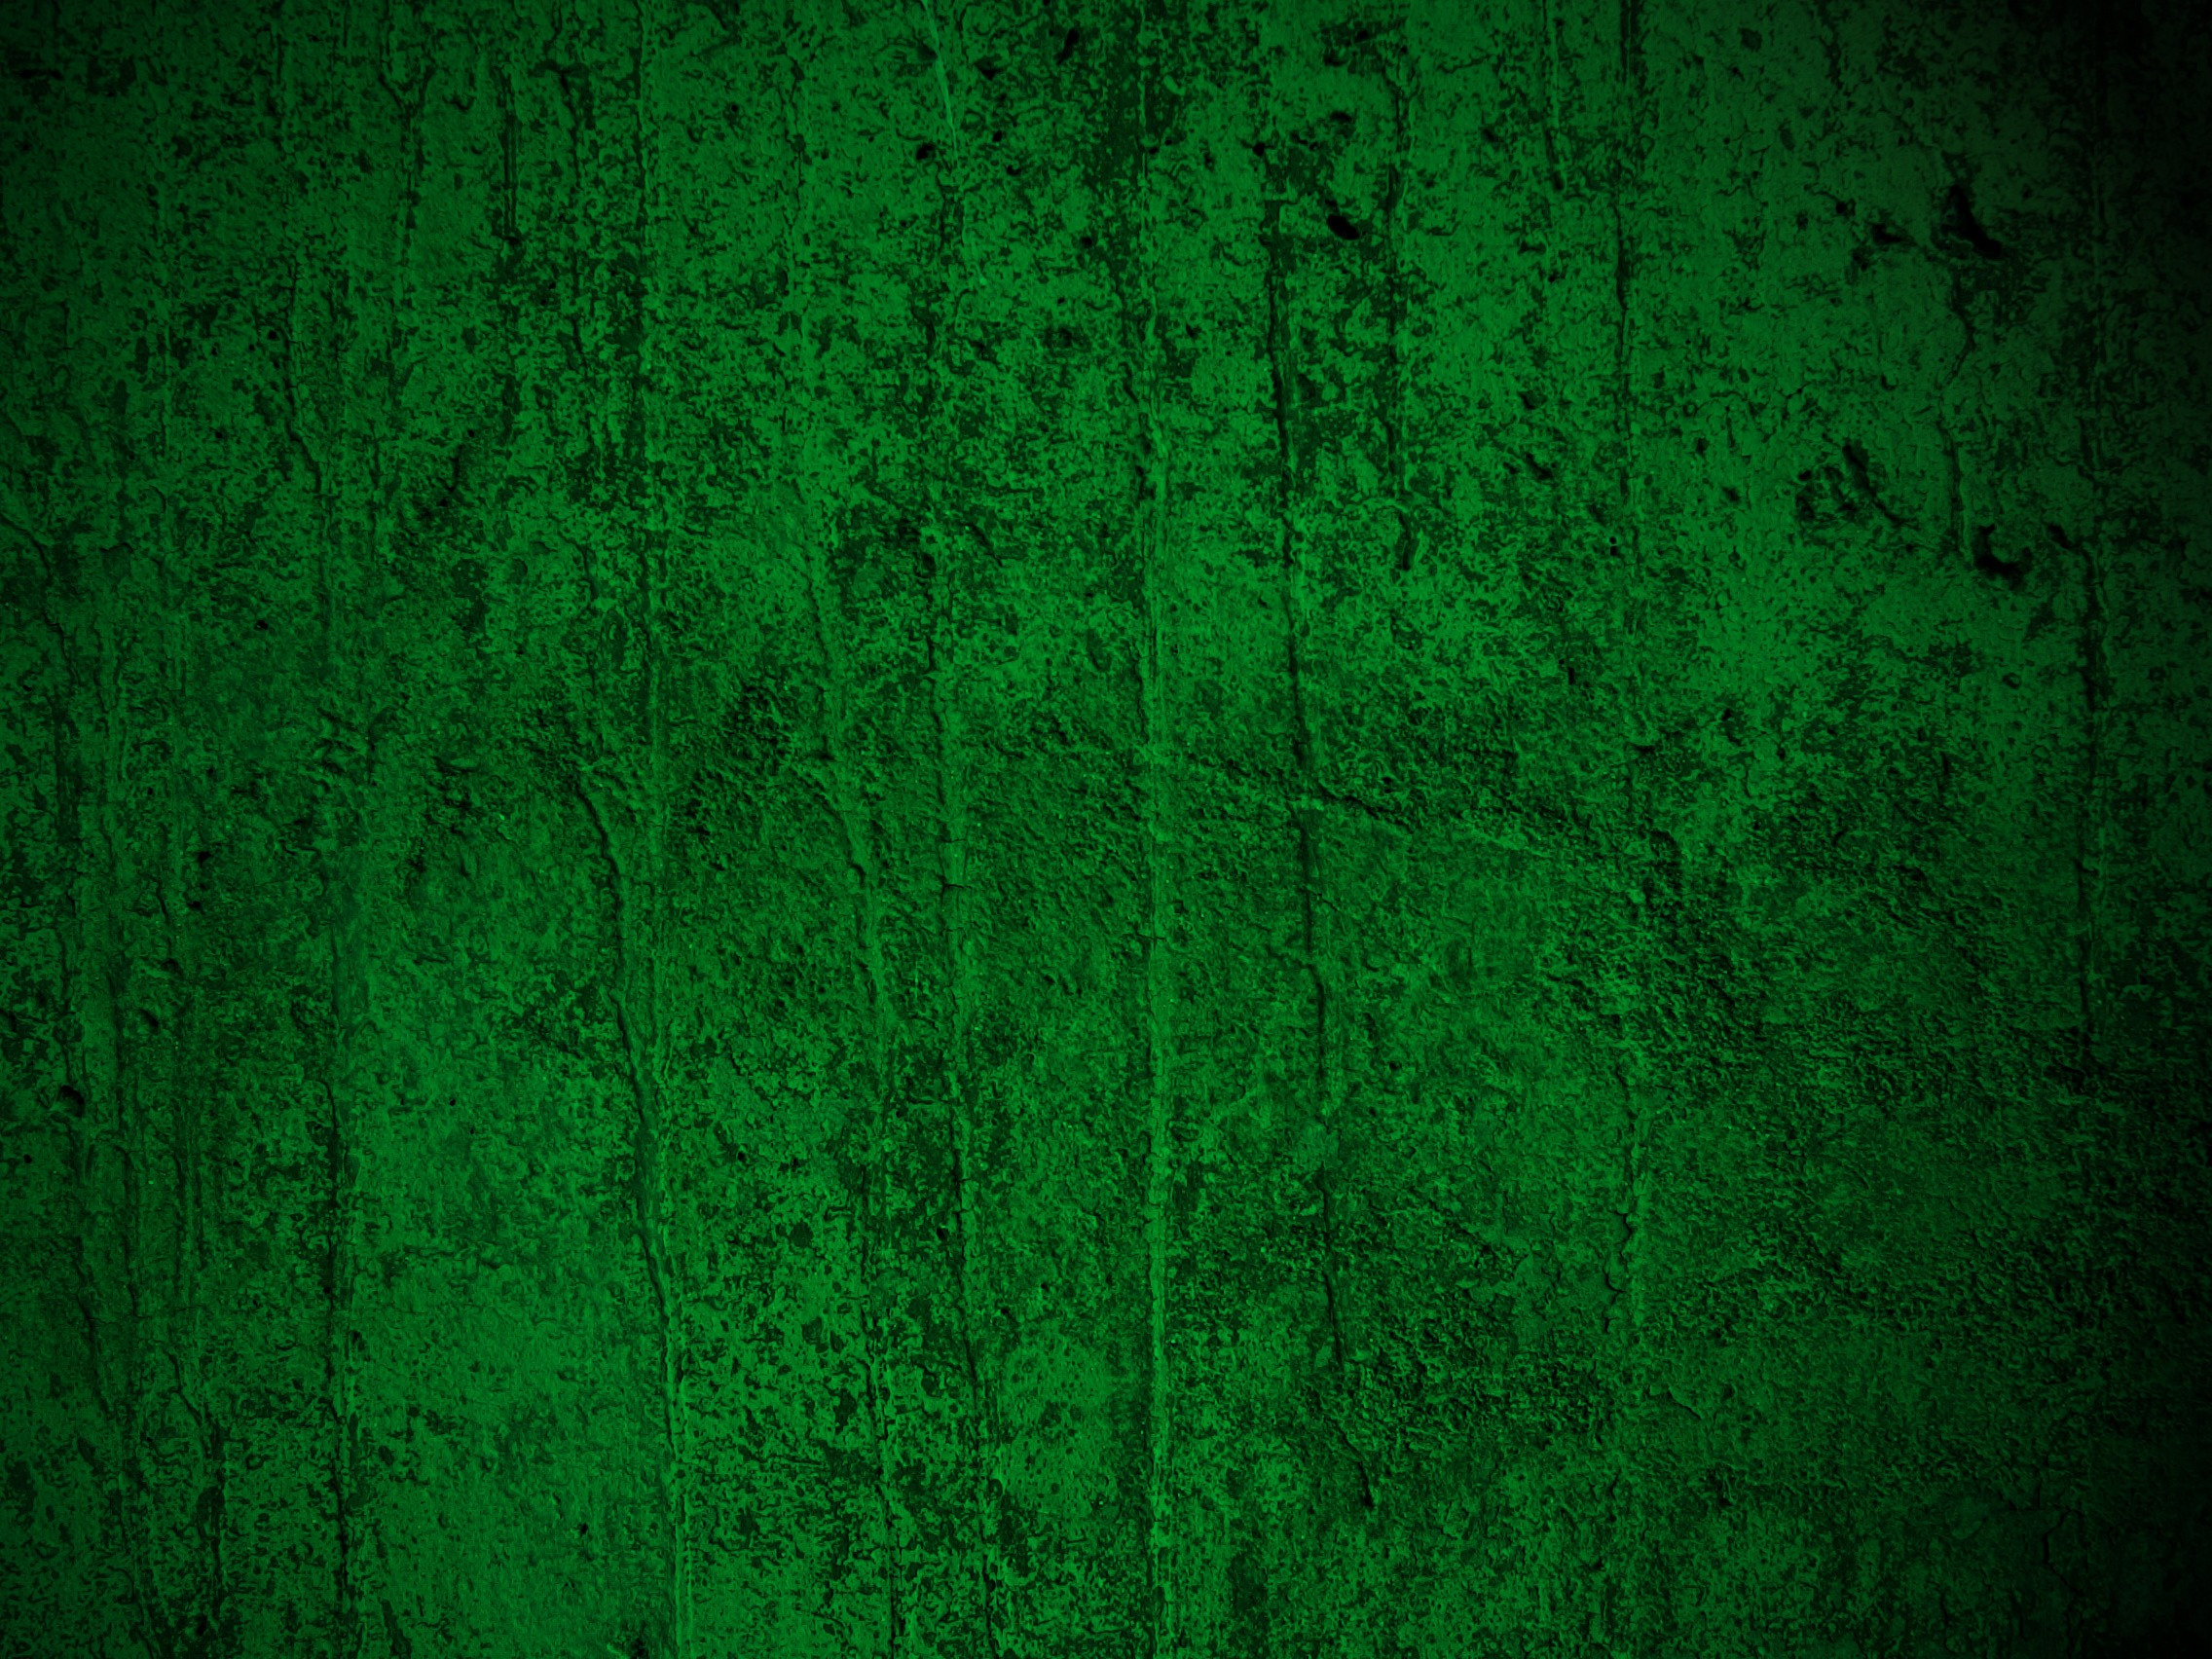 background green  u00b7 u2460 download free amazing backgrounds for